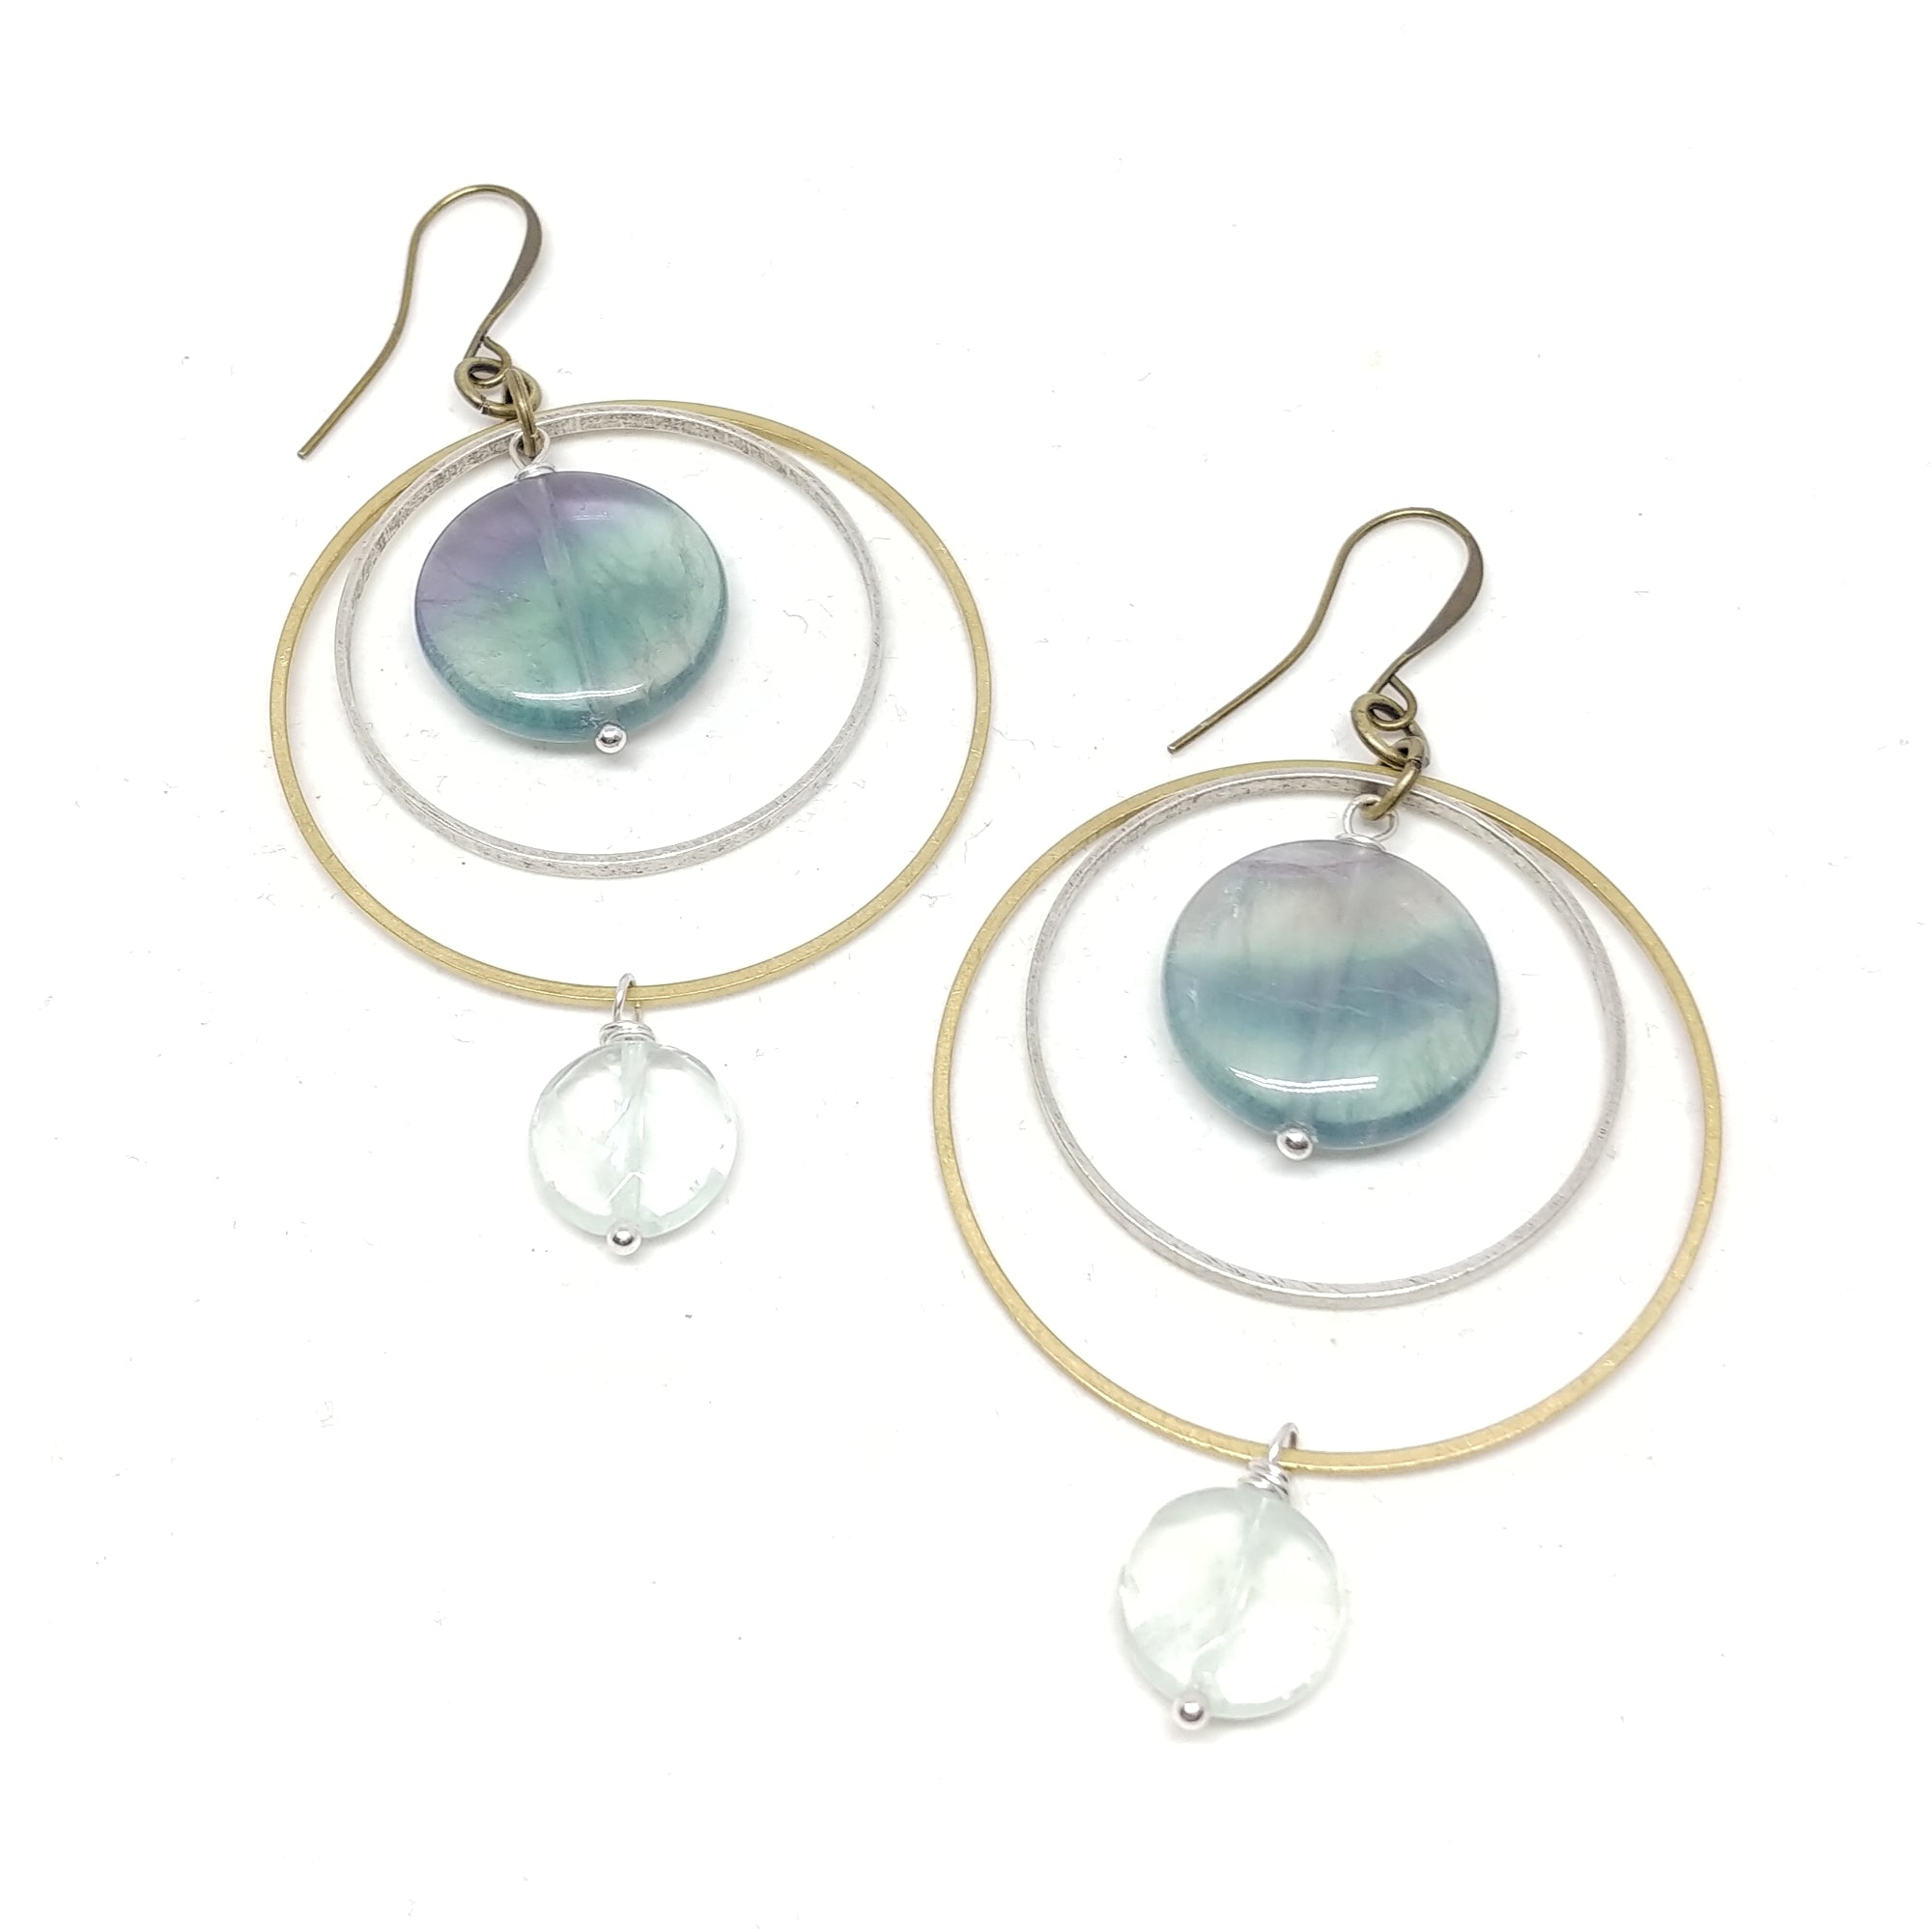 Flourite Mixed Metal Hoops, Mother's Day Citrus Perfume Gift Set